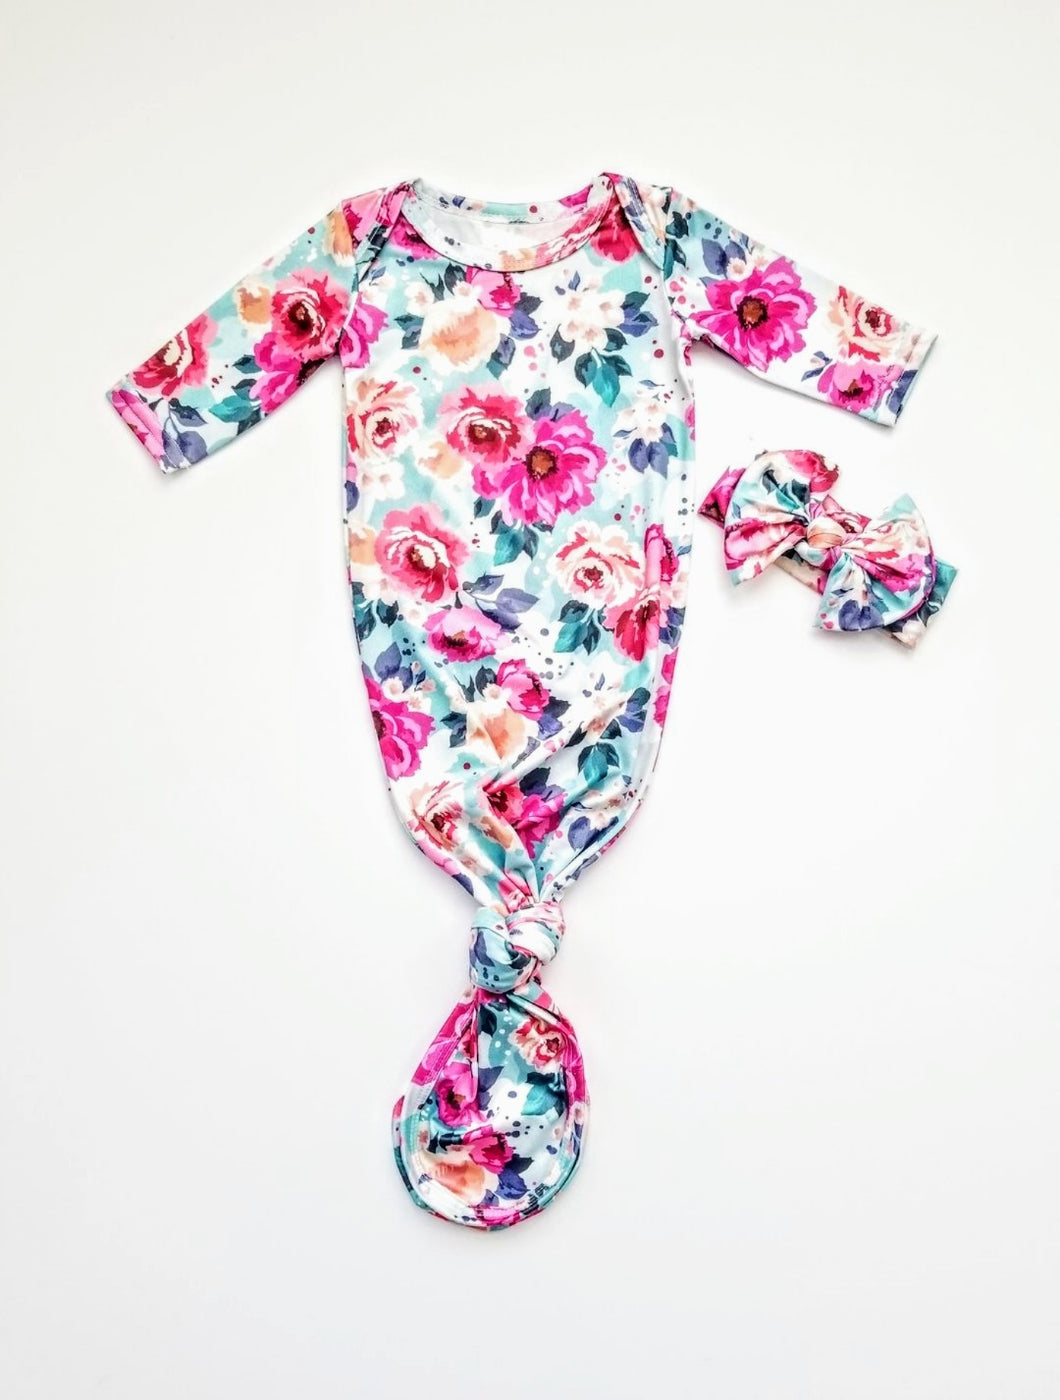 Willa Floral Newborn Knotted Gown | Coming Home Outfit Girl - Adassa Rose